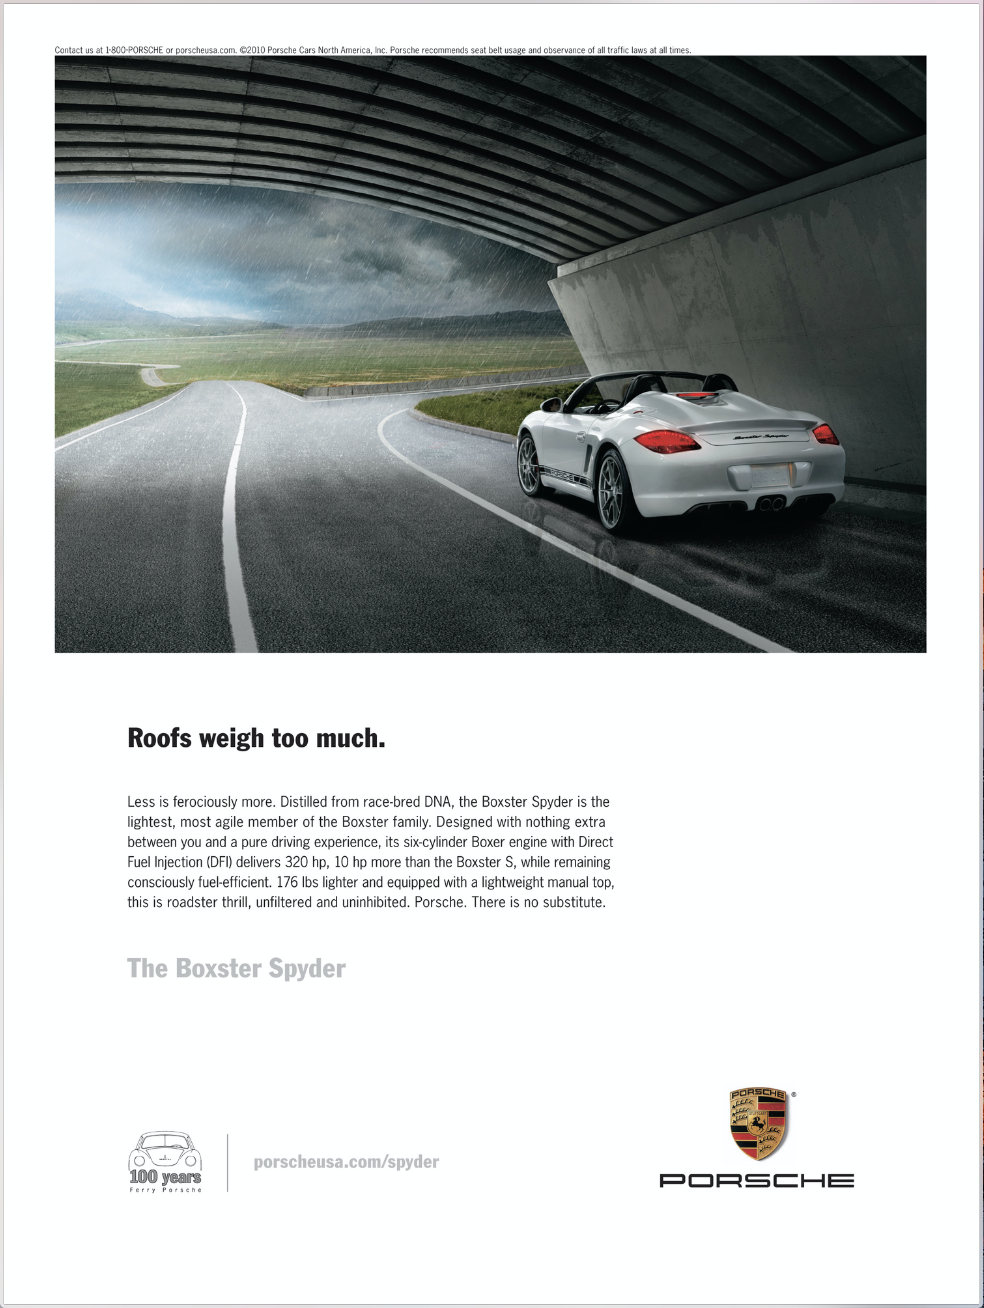 Print ad for the Boxster Spyder.